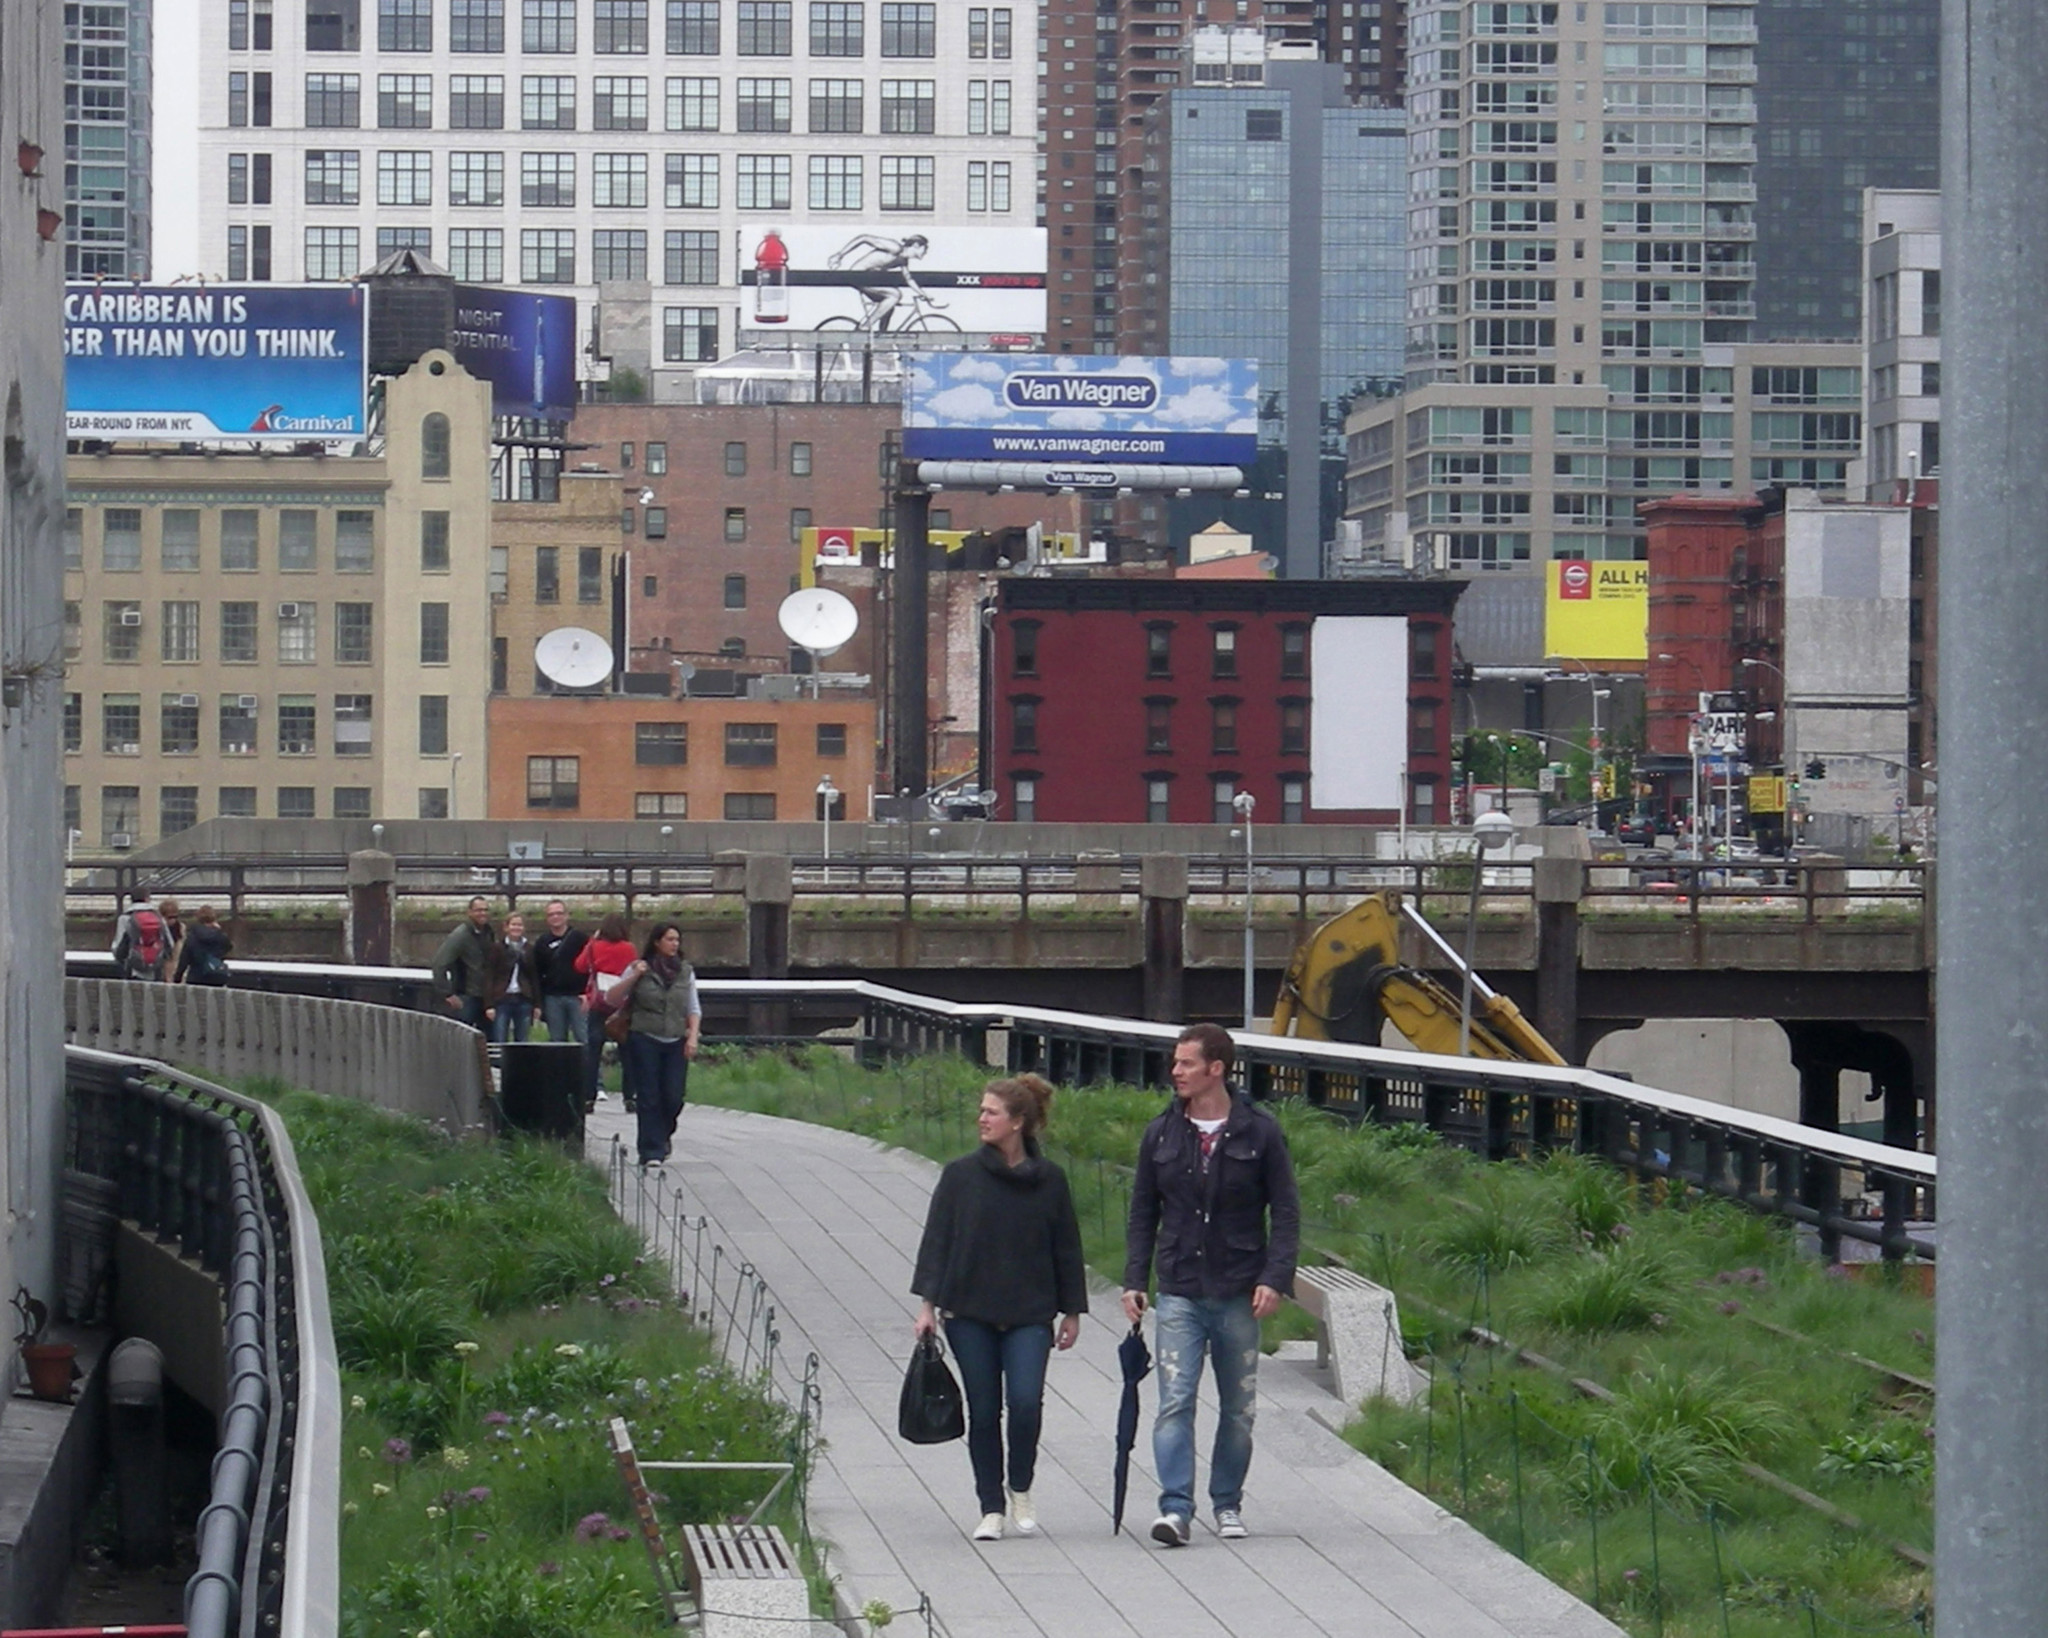 Grassy areas have been added along the High Line Trail in New York City.